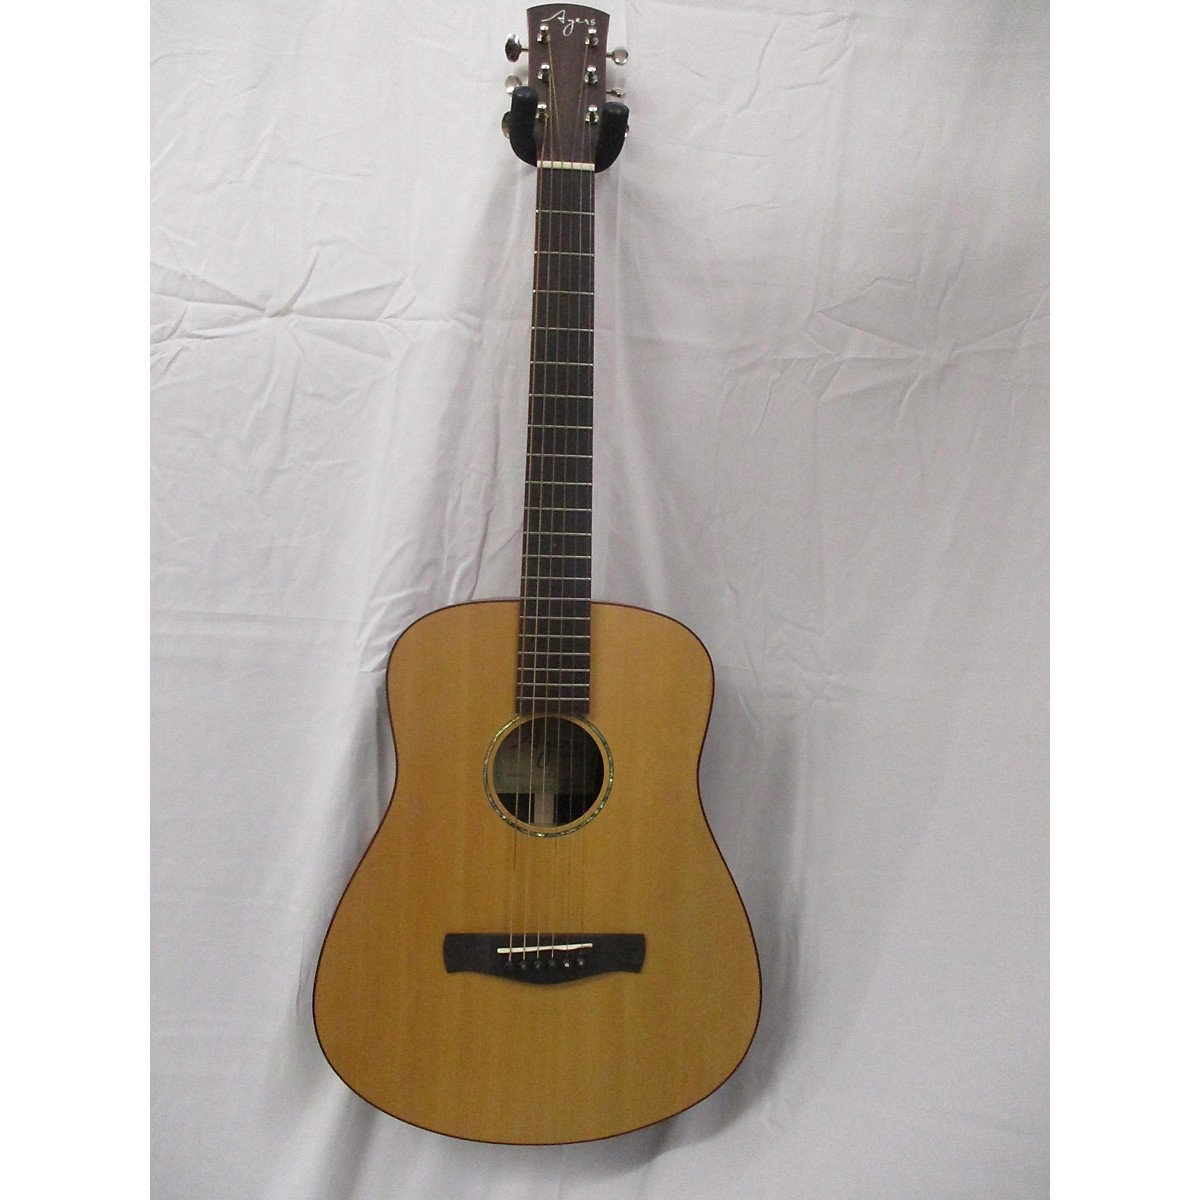 Ayers Td-04 Acoustic Guitar